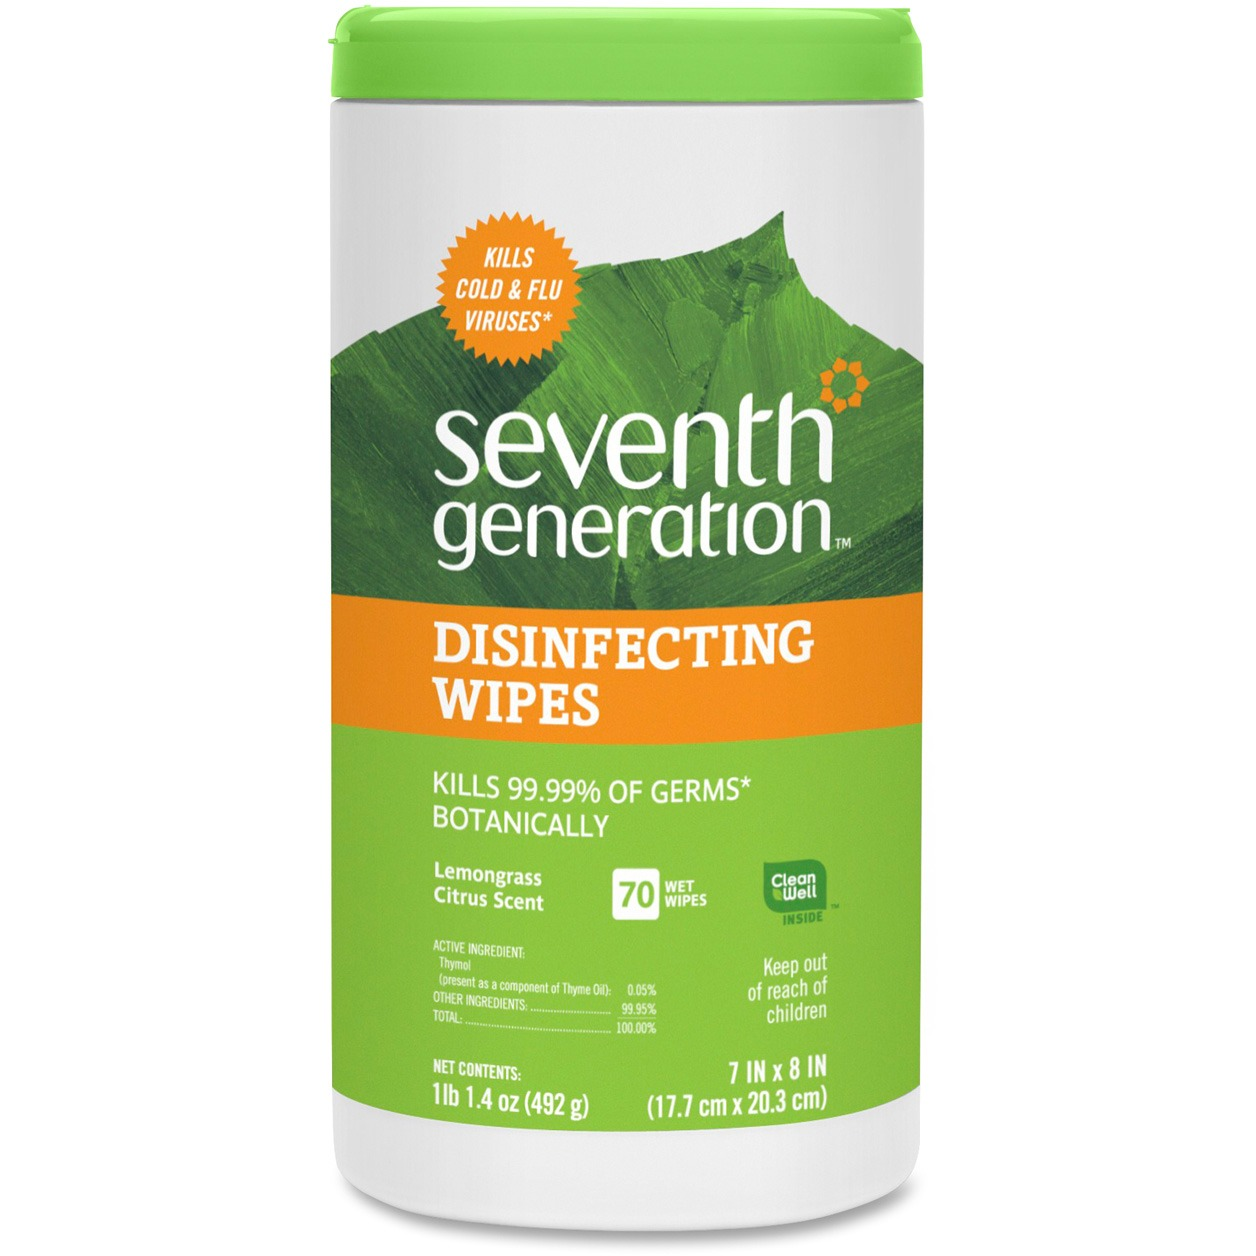 Seventh Generation Disinfecting Wipes Lemongrass Citrus 70 count